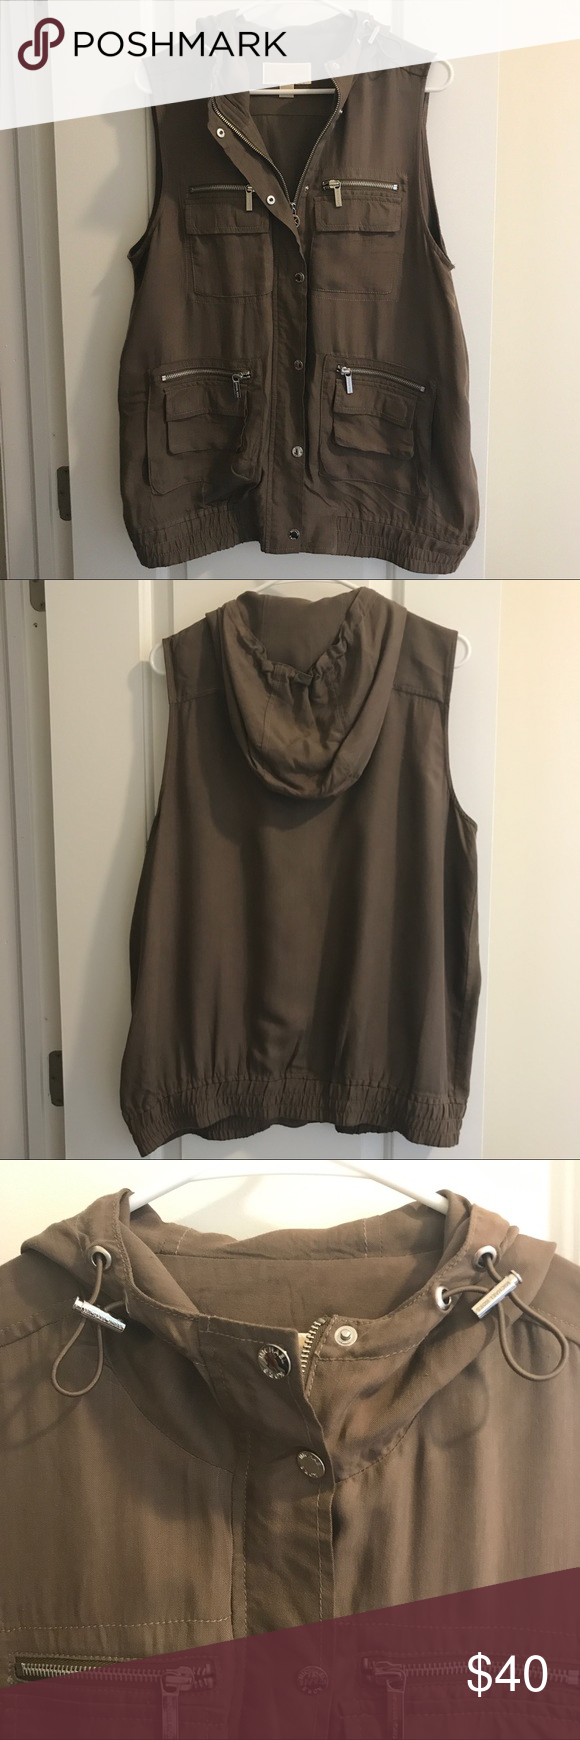 Michael Kors Olive Green Utility Vest with Hood Michael Kors Olive Green Utility Vest with Hood. Only worn a few times, in excellent condition! 100% rayon. Perfect paired with jeans and a collared button down! MICHAEL Michael Kors Jackets & Coats Vests